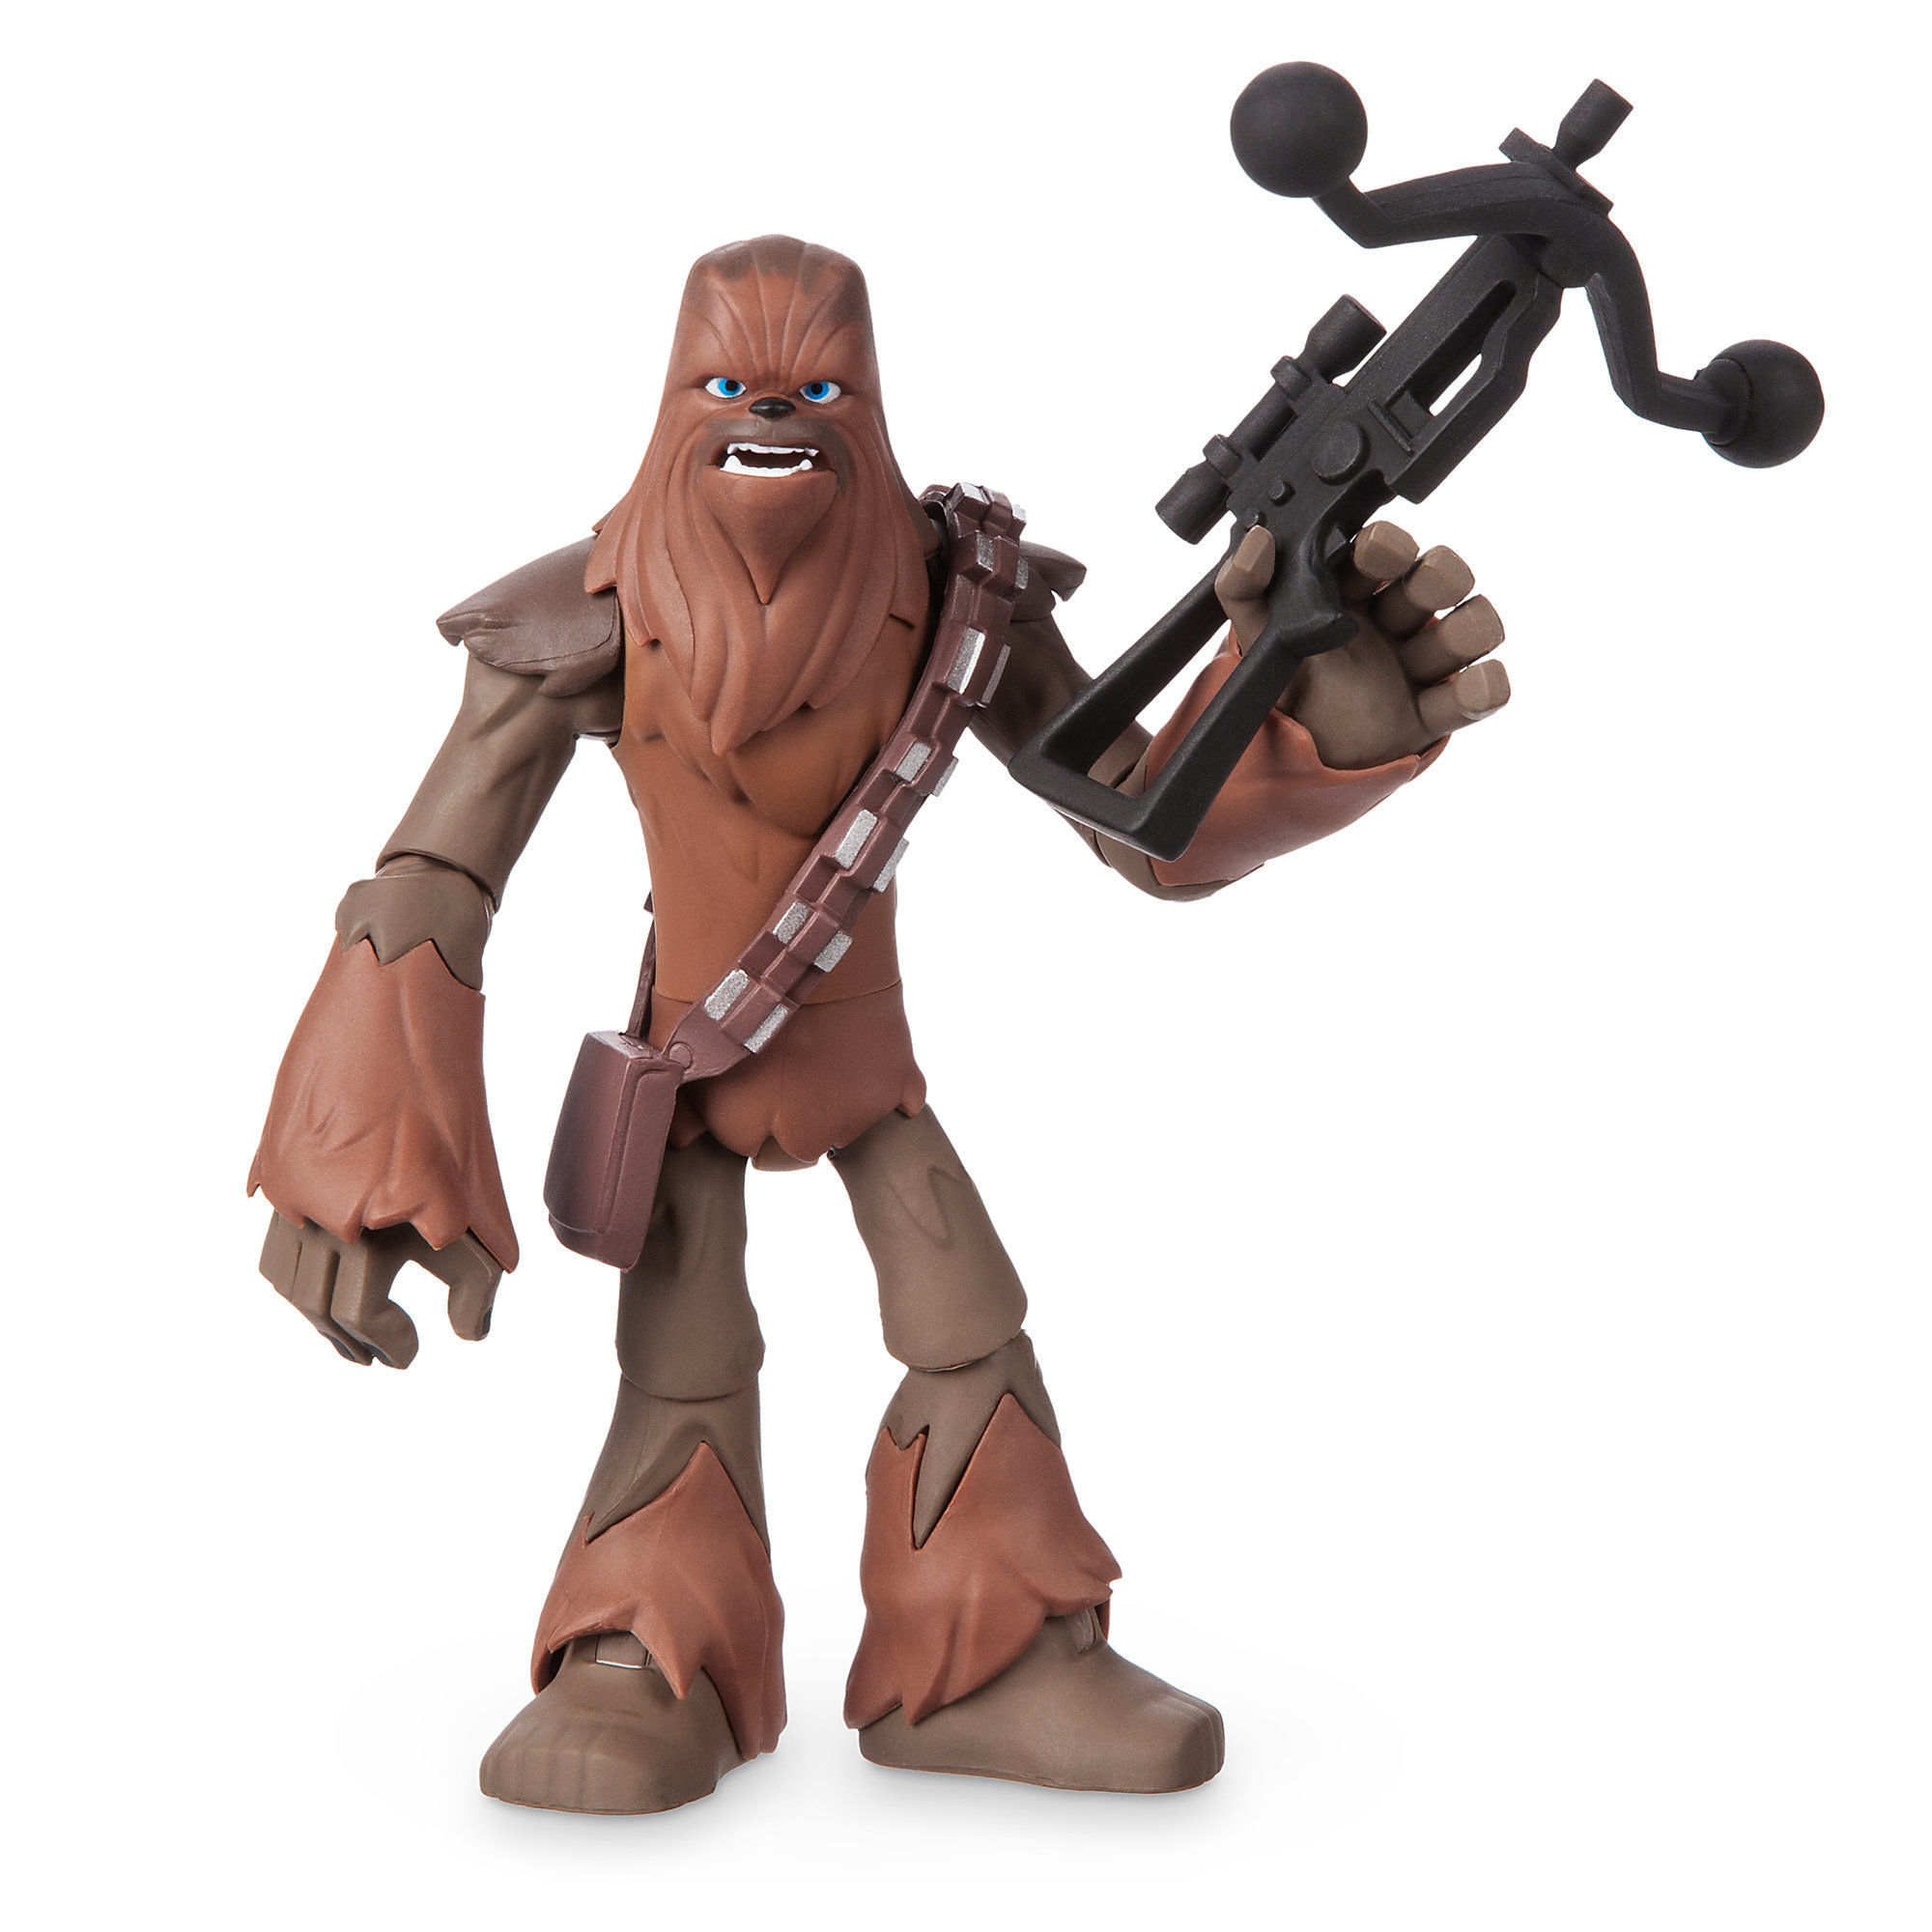 Disney Store Exclusive Star Wars Toy Box Chewbacca & Han Solo Figures Available Now